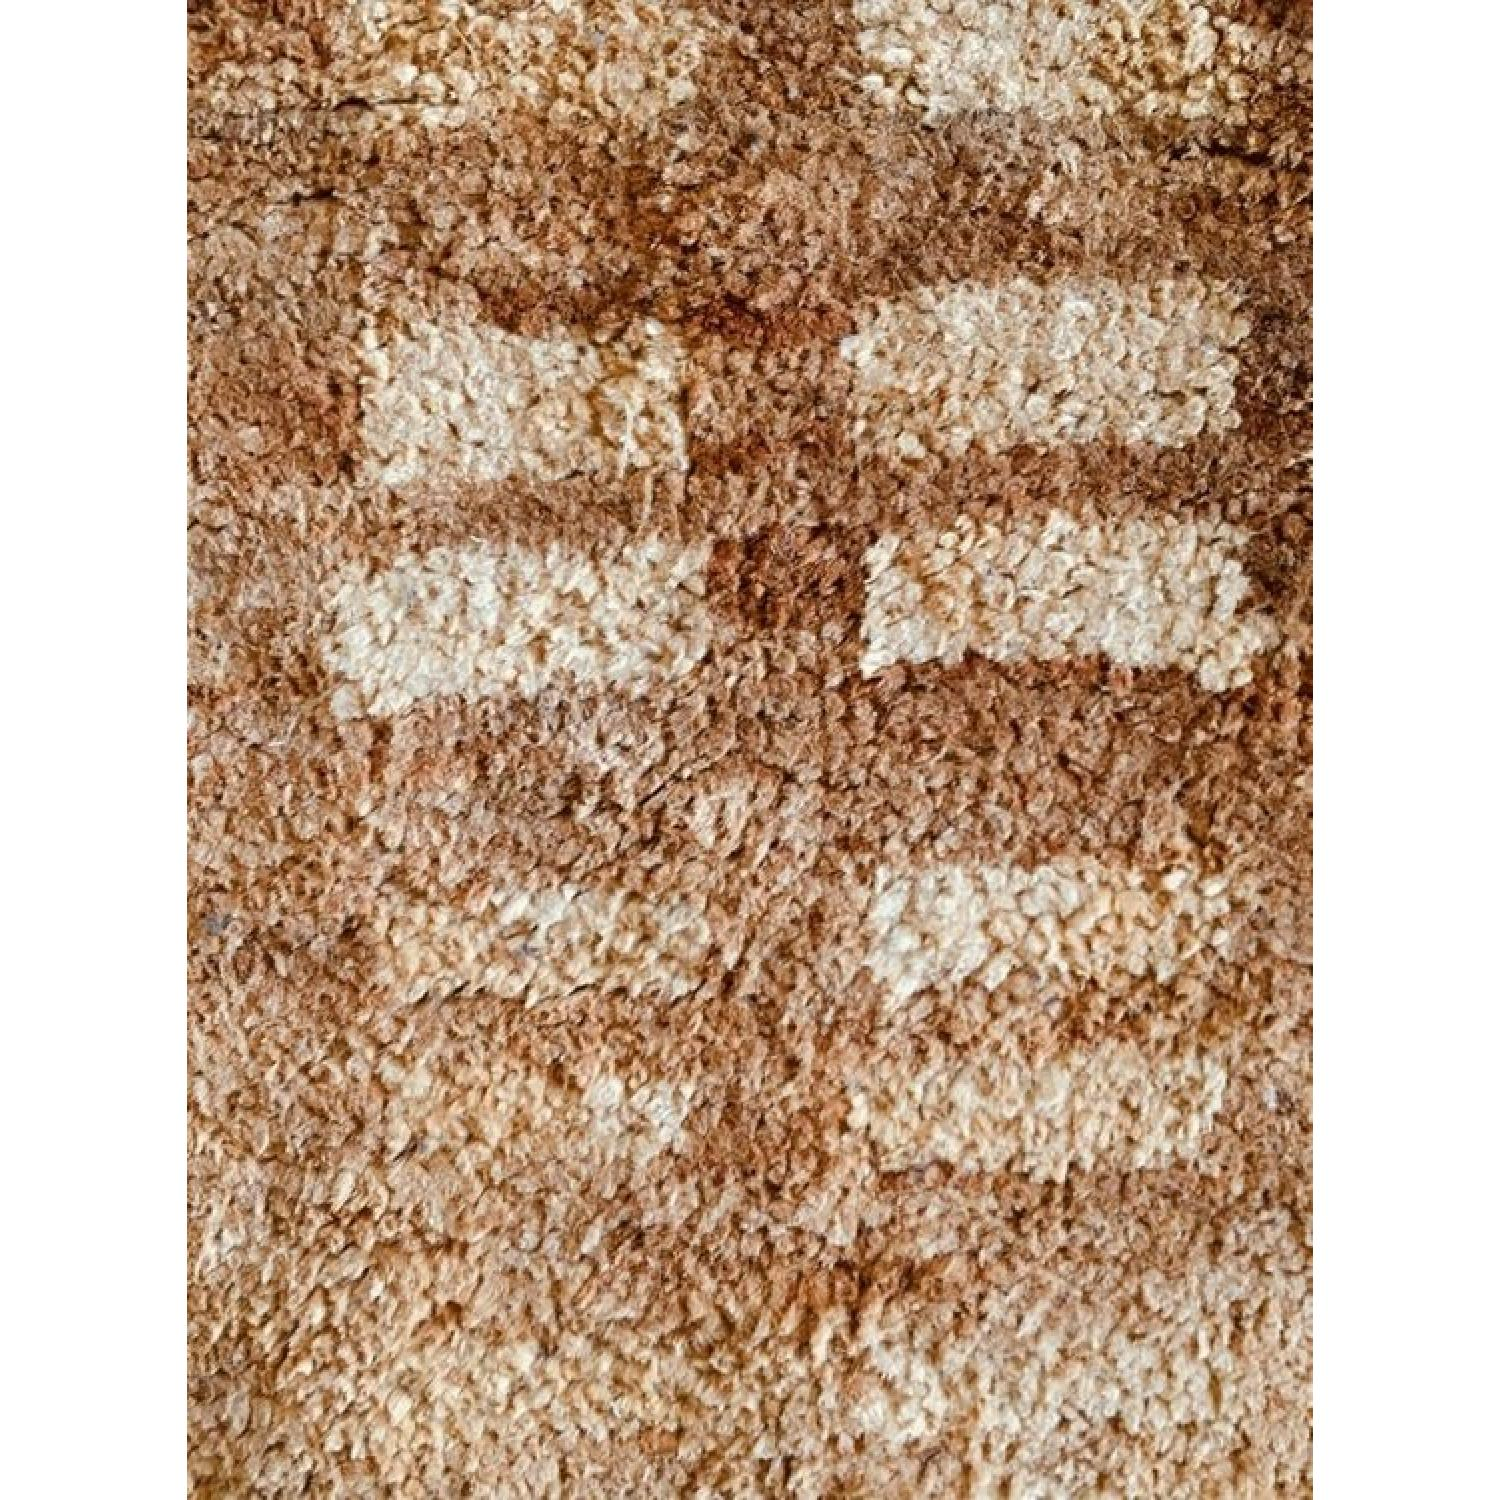 Dwell Studio Blocks Hand Knotted Jute Camel Area Rug-1